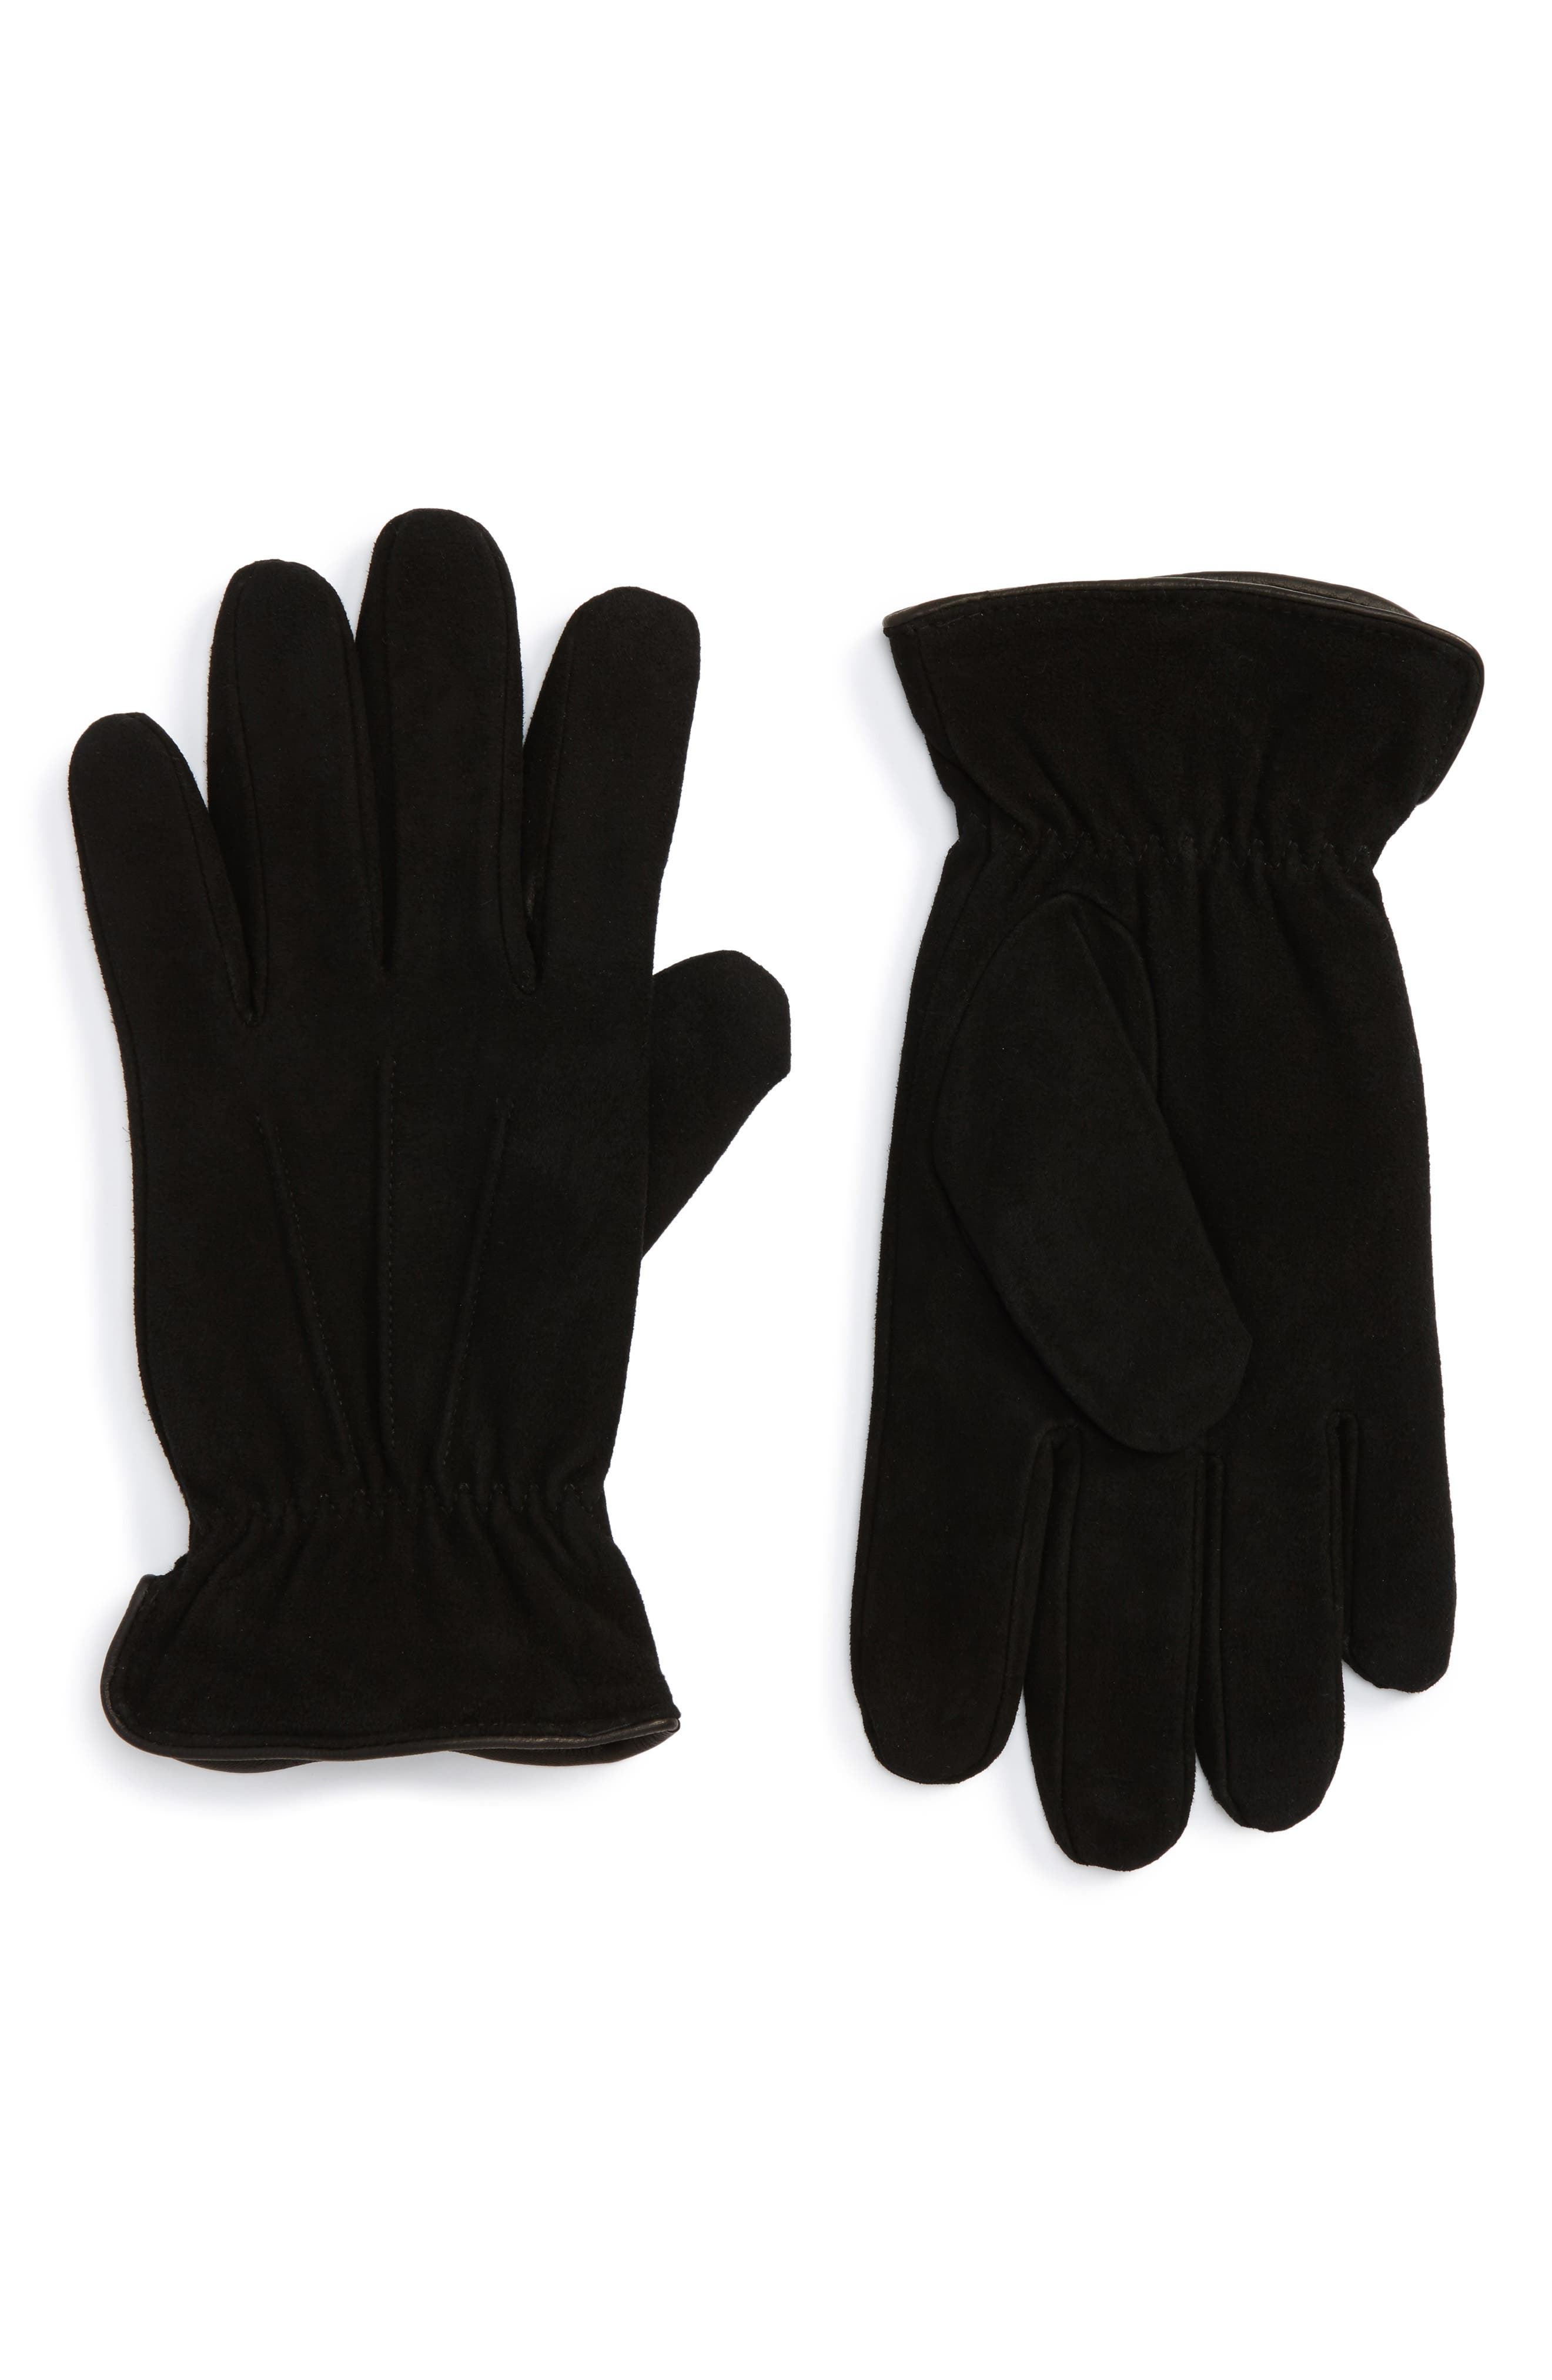 Suede Thermolite<sup>®</sup> Gloves,                             Main thumbnail 1, color,                             Black